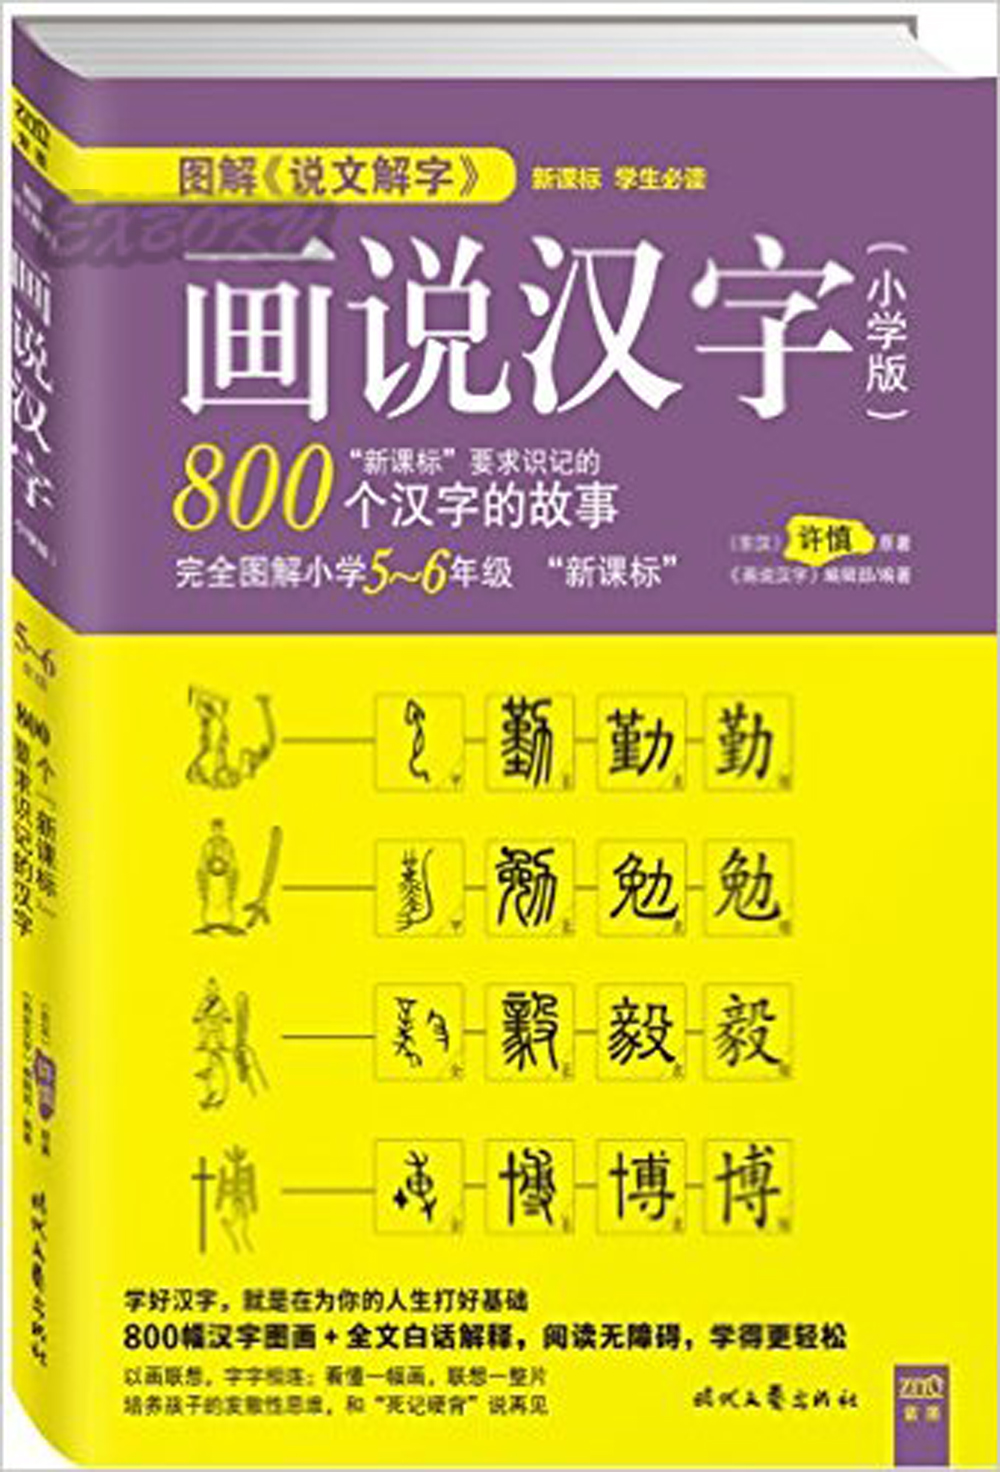 Chinese character picture books dictionary for advanced learning 800 Chinese character hanzi early Educational School textbook